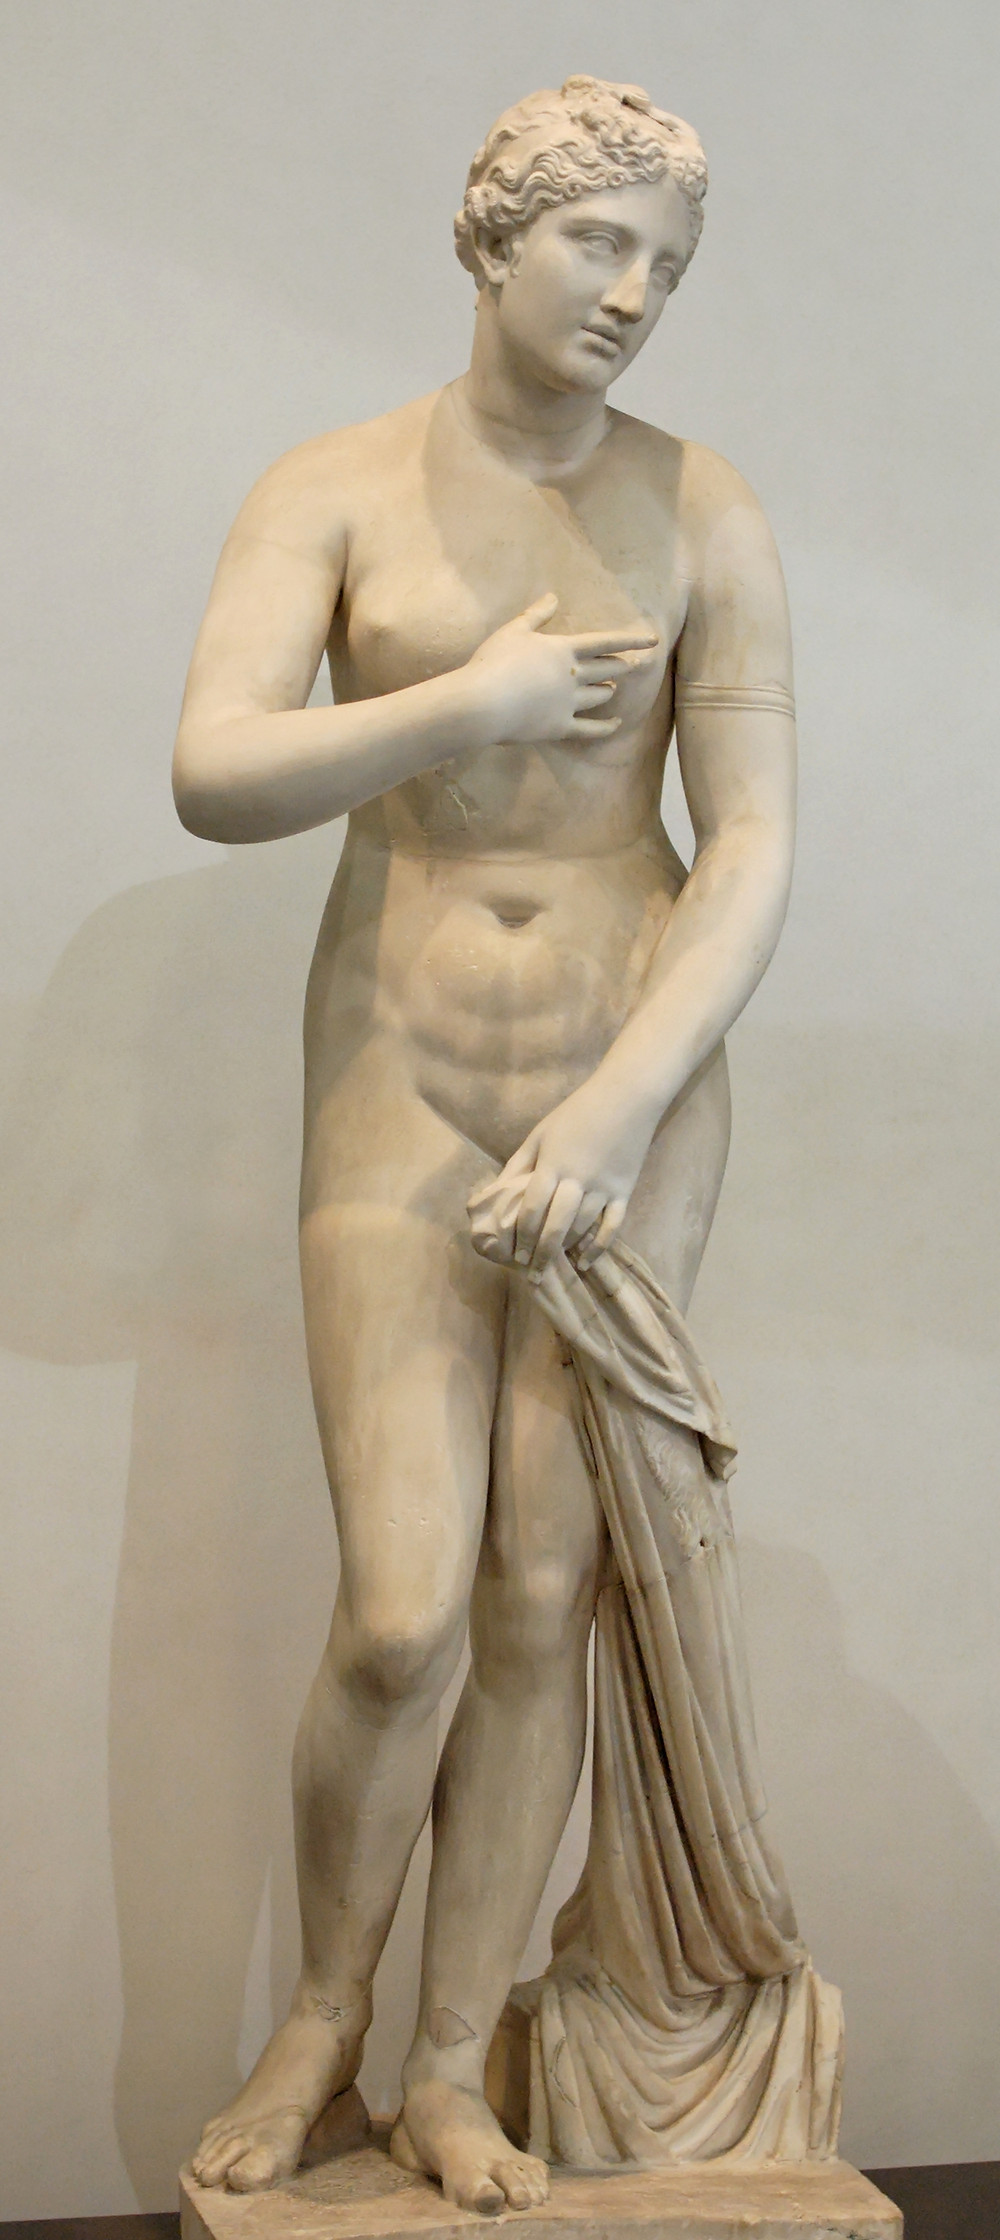 Greek Marble Statue of Aphrodite, signed by Menophantos, in the Palazzo Massimo, Rome.